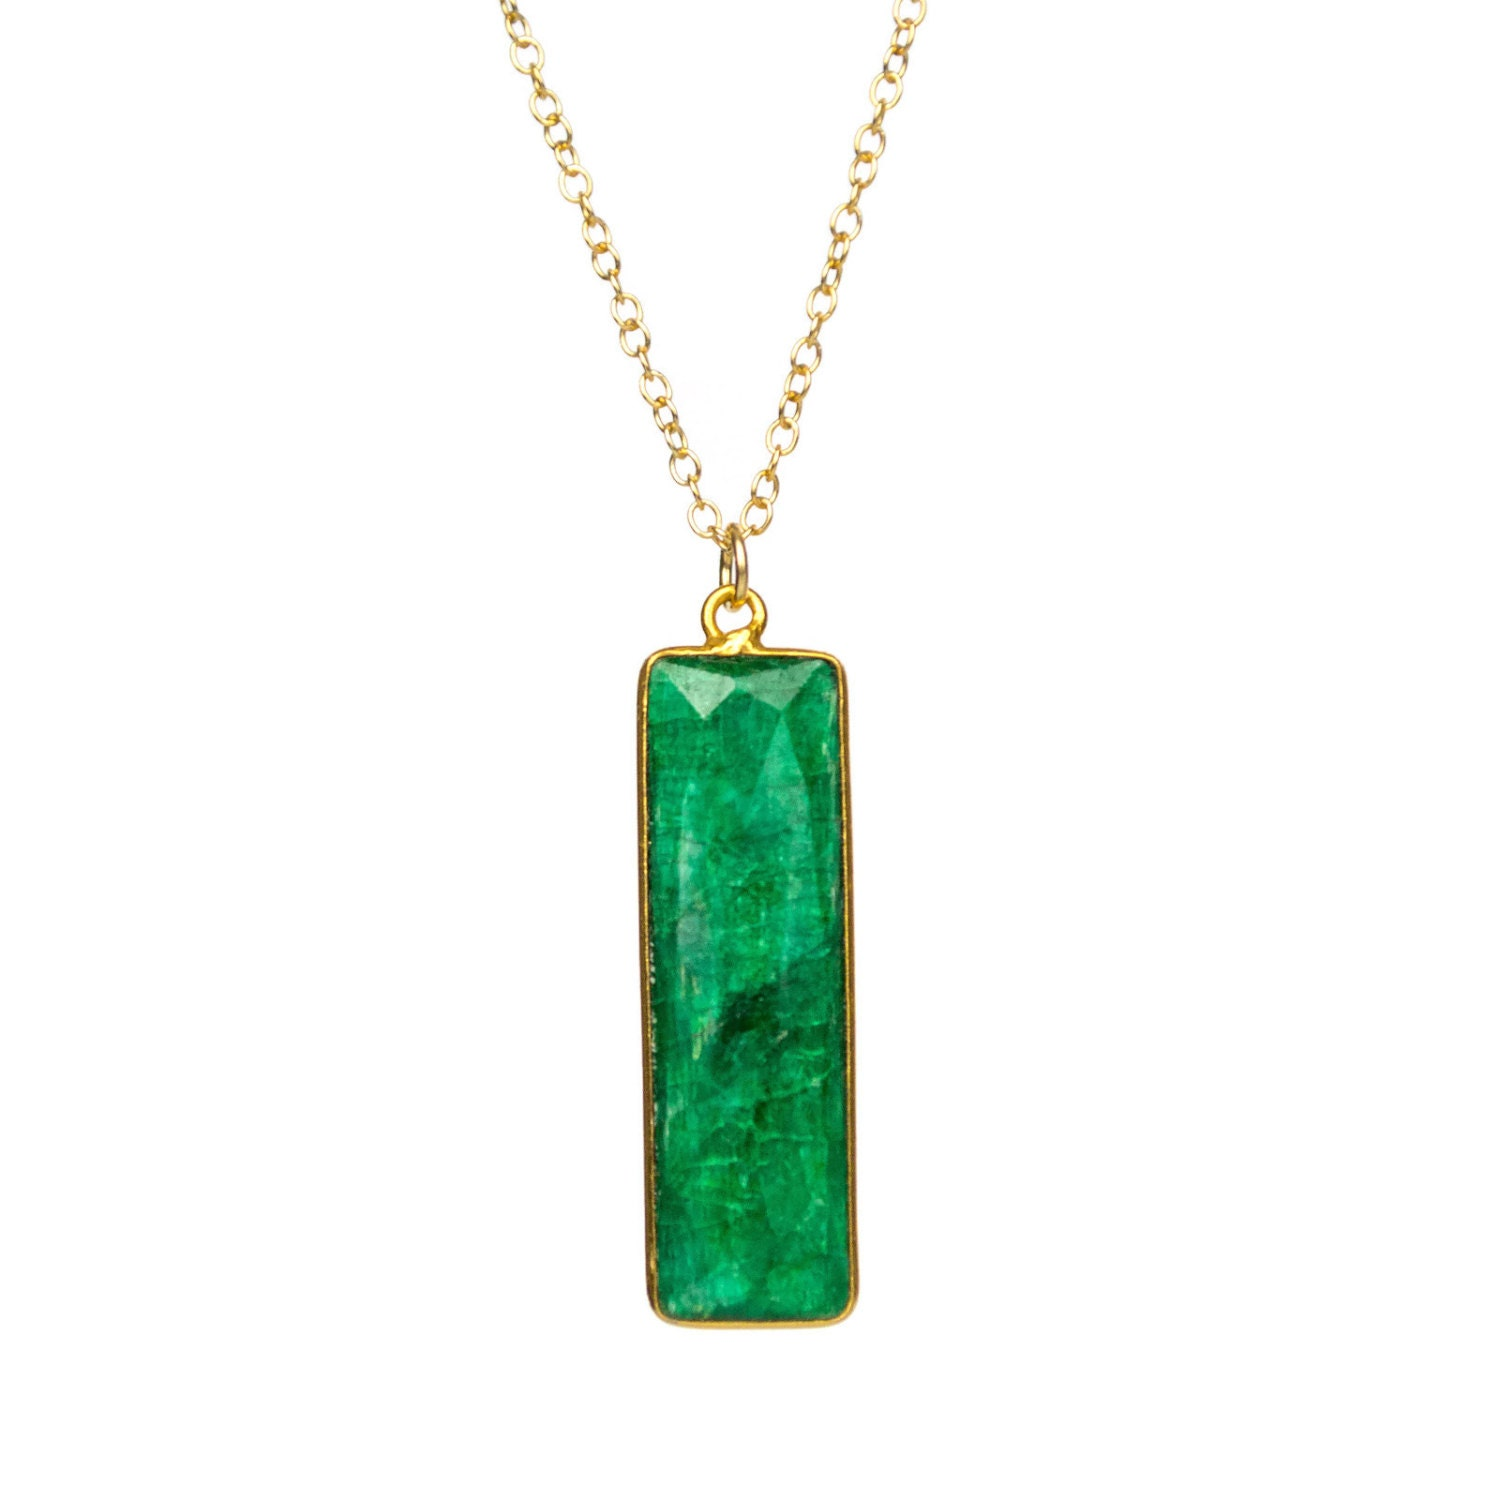 Emerald Necklace Gold Emerald Green Necklace By Gemstonique. Small Diamond Wedding Band. Micro Pave Diamond. Pink Bracelet. Altimeter Watches. Gold Ankle Bracelet. Daniels Wedding Rings. Cz Diamond Pendant. Oriental Sapphire